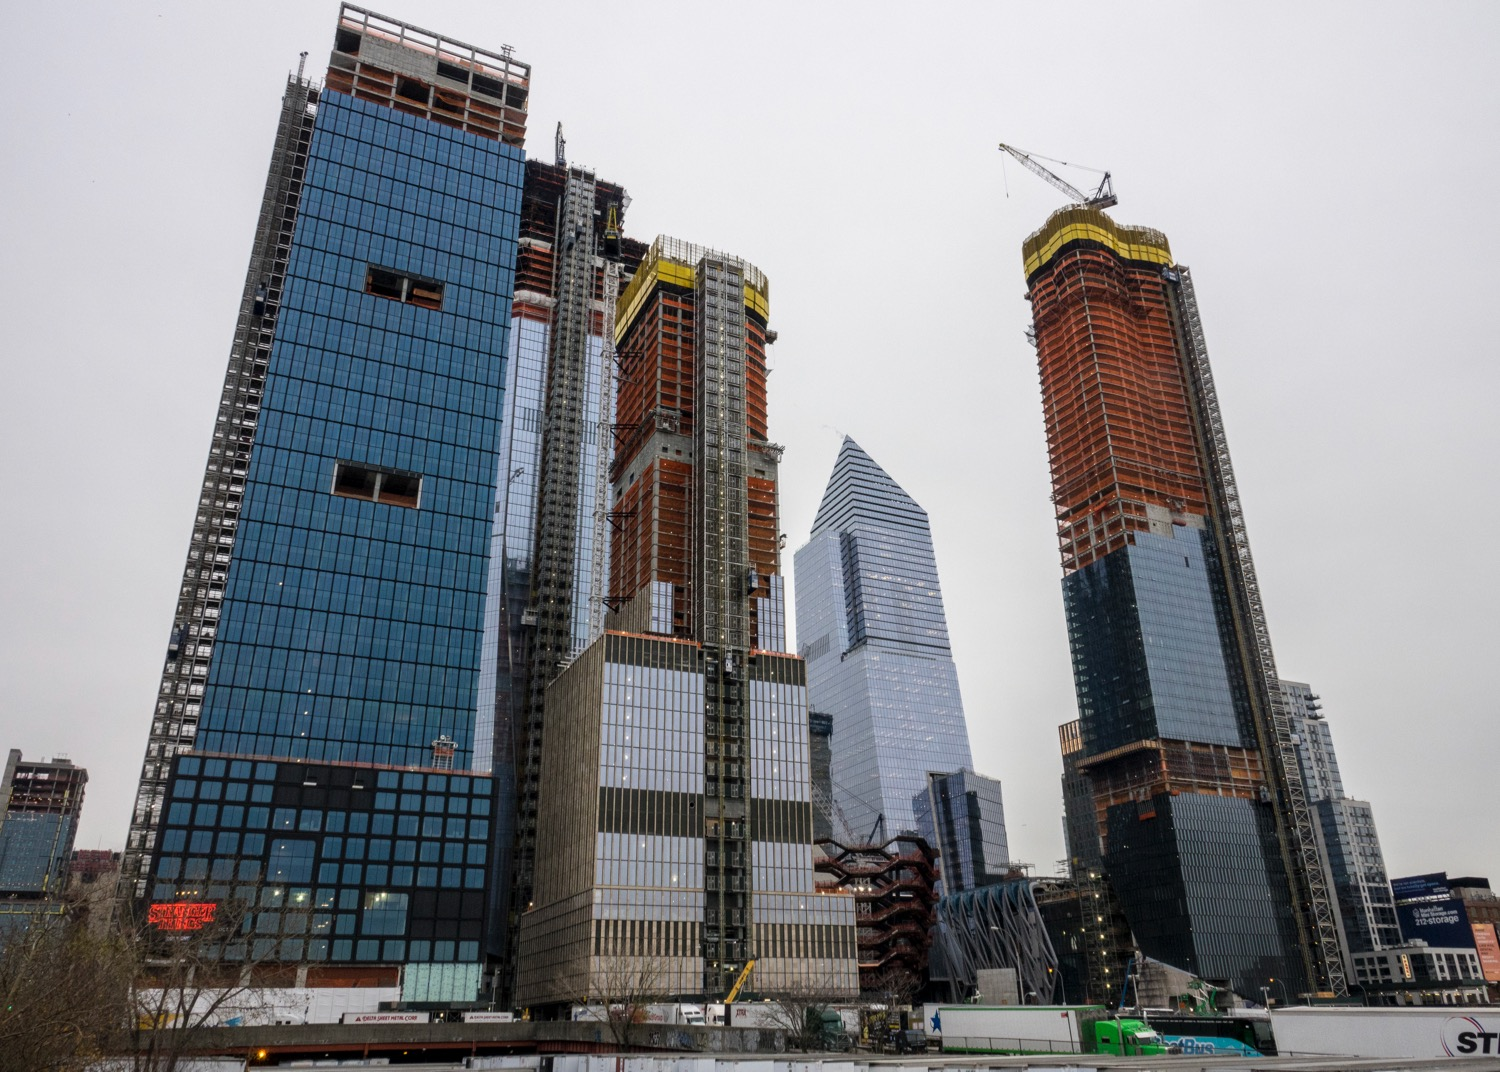 Hudson Yards is the largest private real estate development in the history of the United States and the largest development in New York City since Rockefeller Center. The site will include more than 18 million square feet of commercial and residential space, state-of-the-art office towers, approximately 4,000 residences, 14 acres of public open space, a 750-seat public school and a luxury hotel with more than 200 rooms.